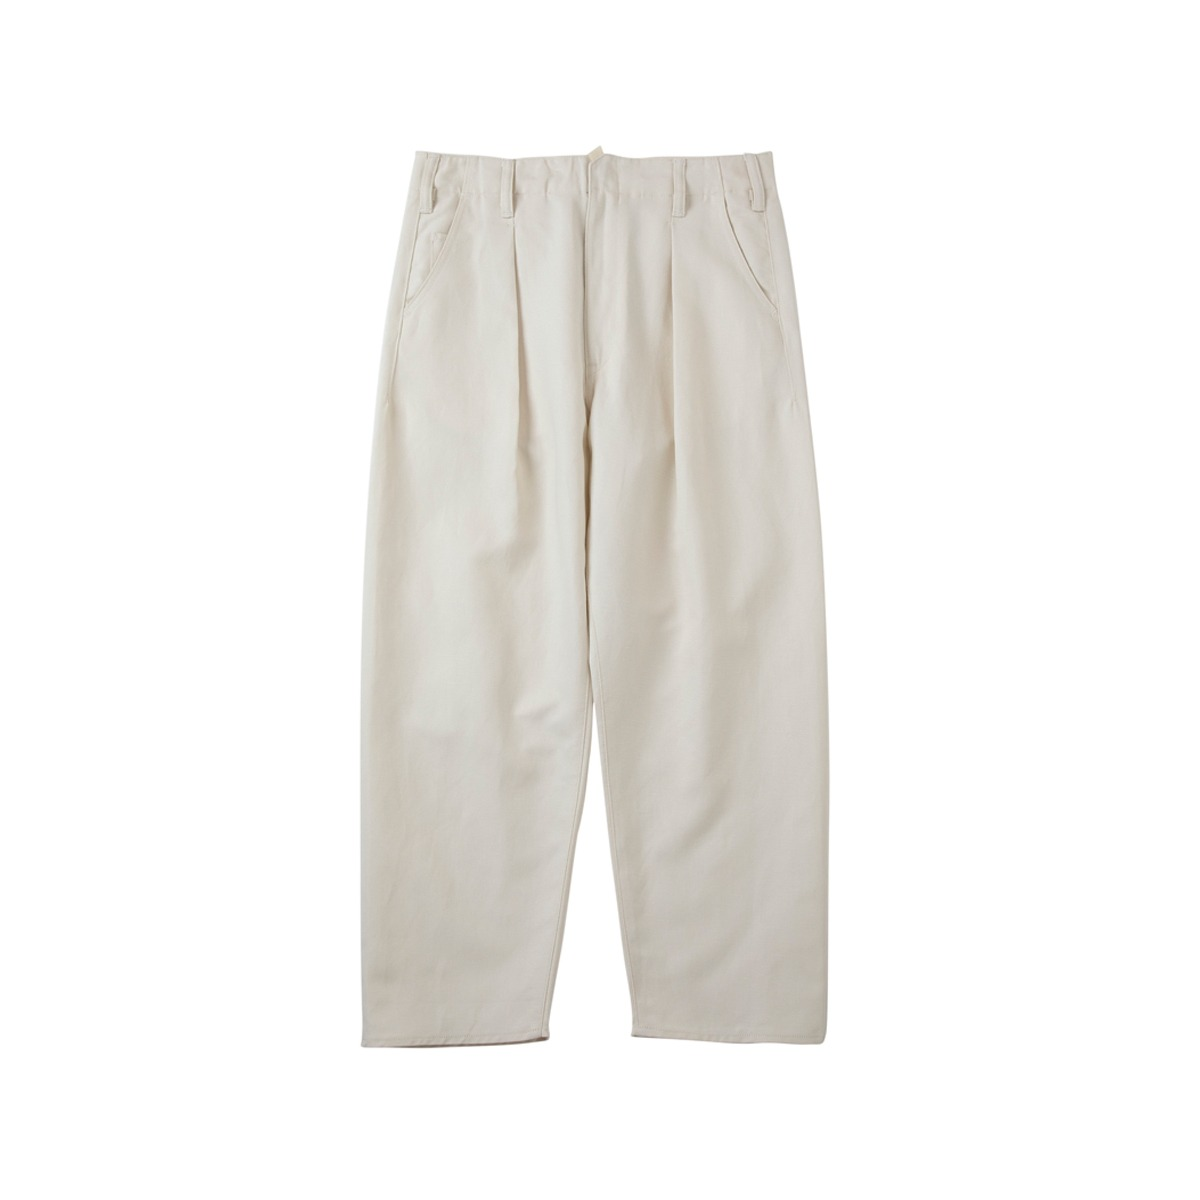 [SABY] BIG PANTS - WHITE LINEN 'ECRU'